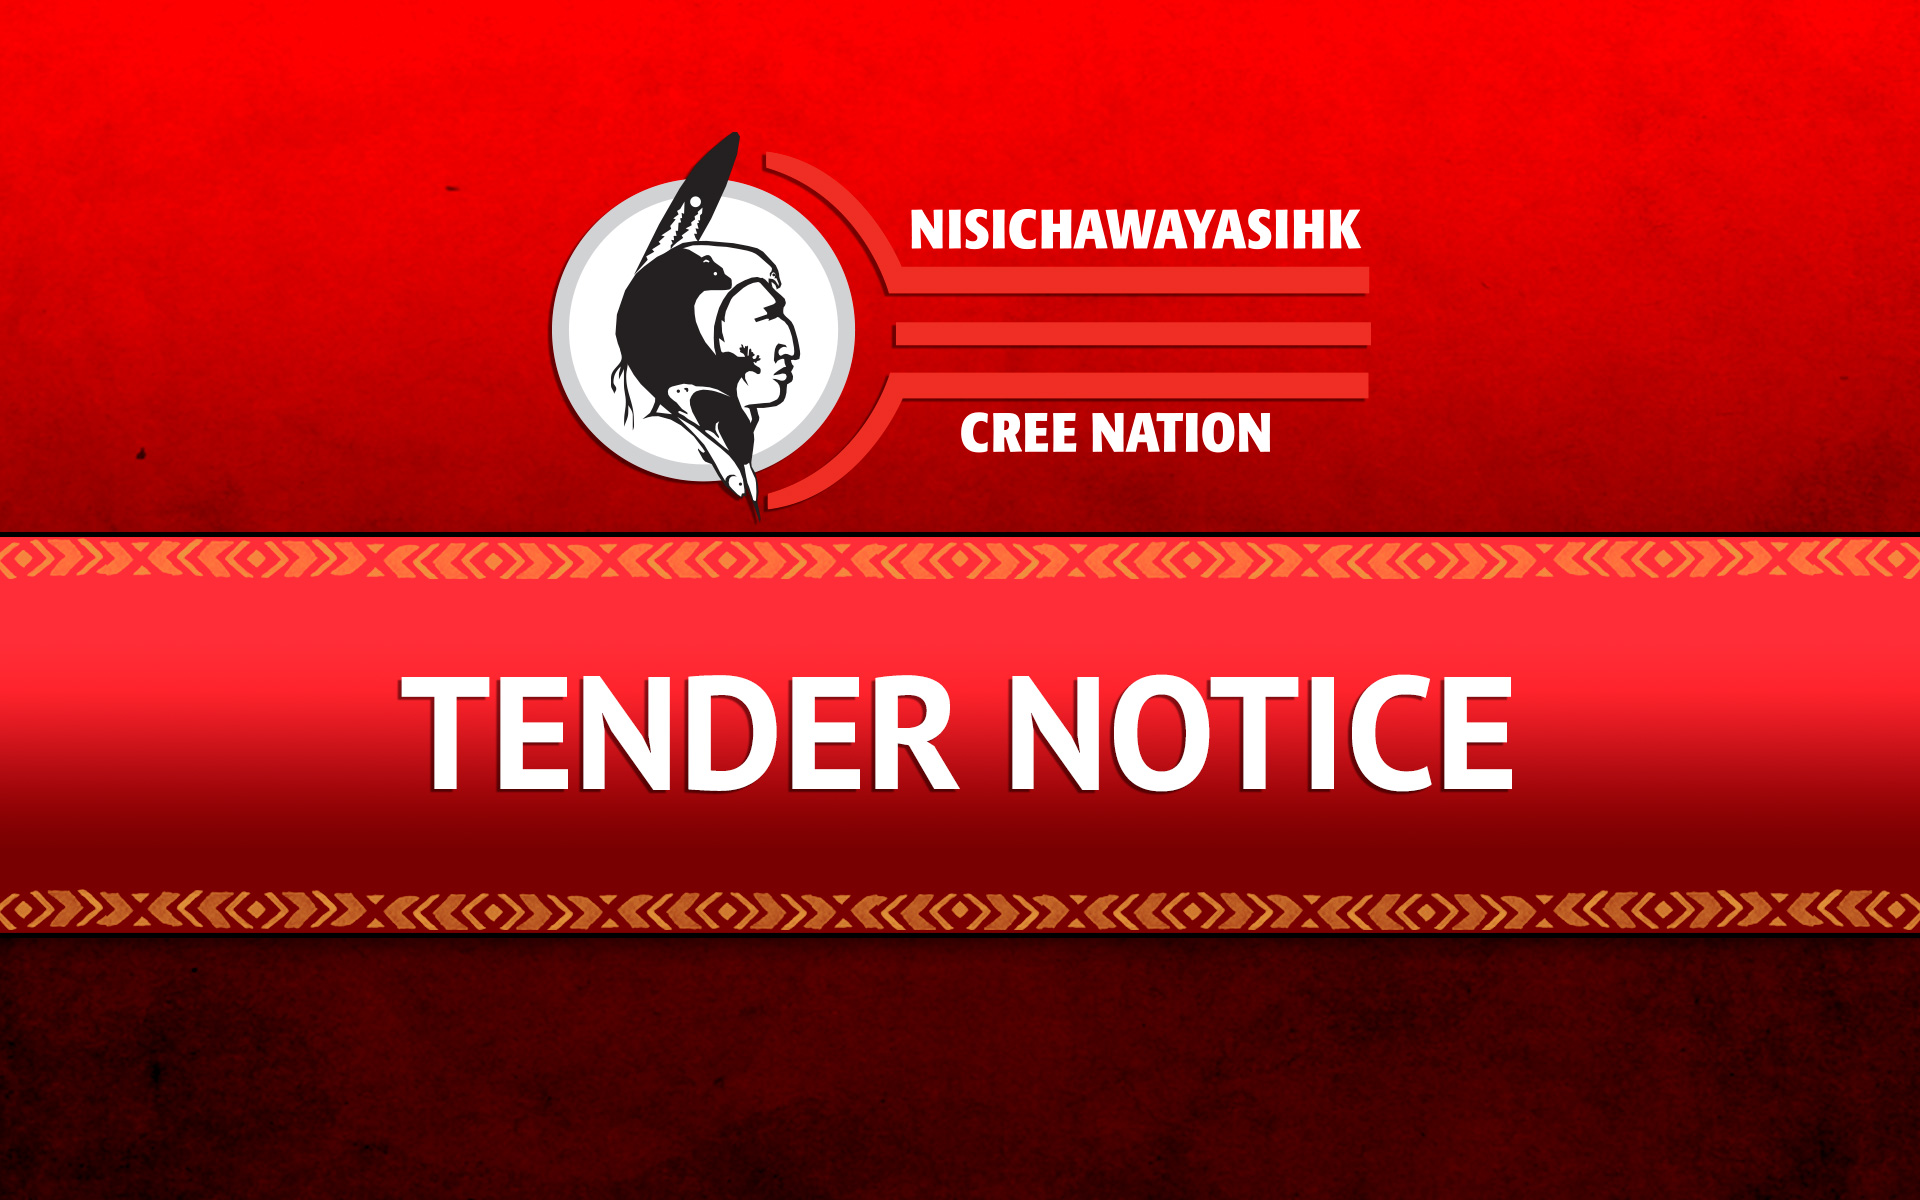 NCN Tender Notice